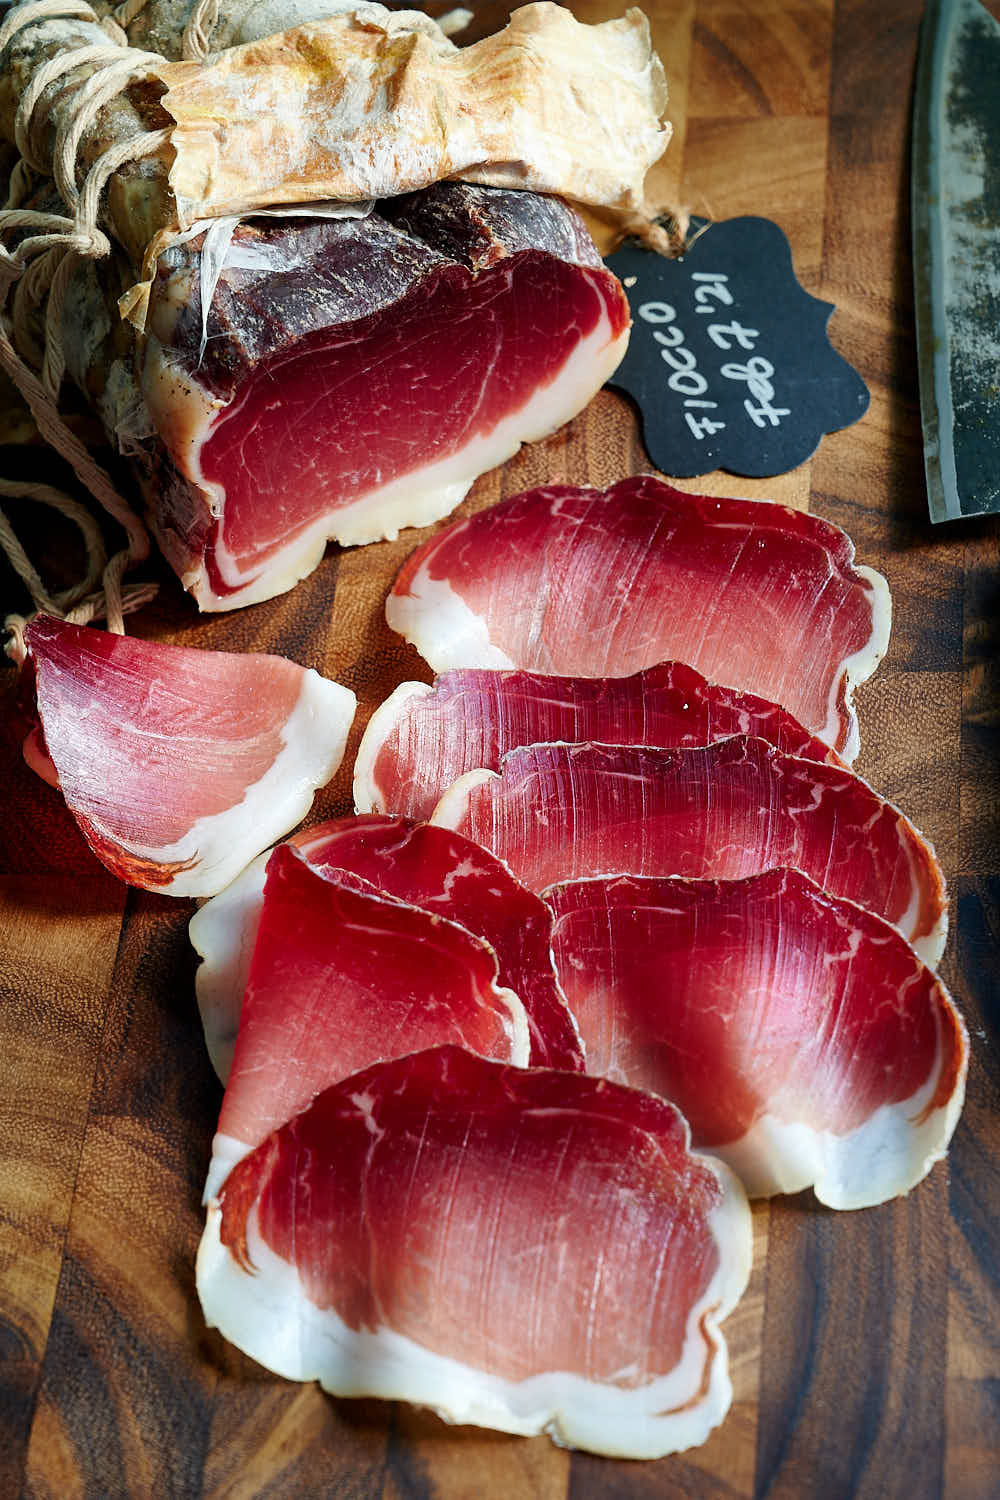 Sliced fiocco - Italian dry cured ham meat